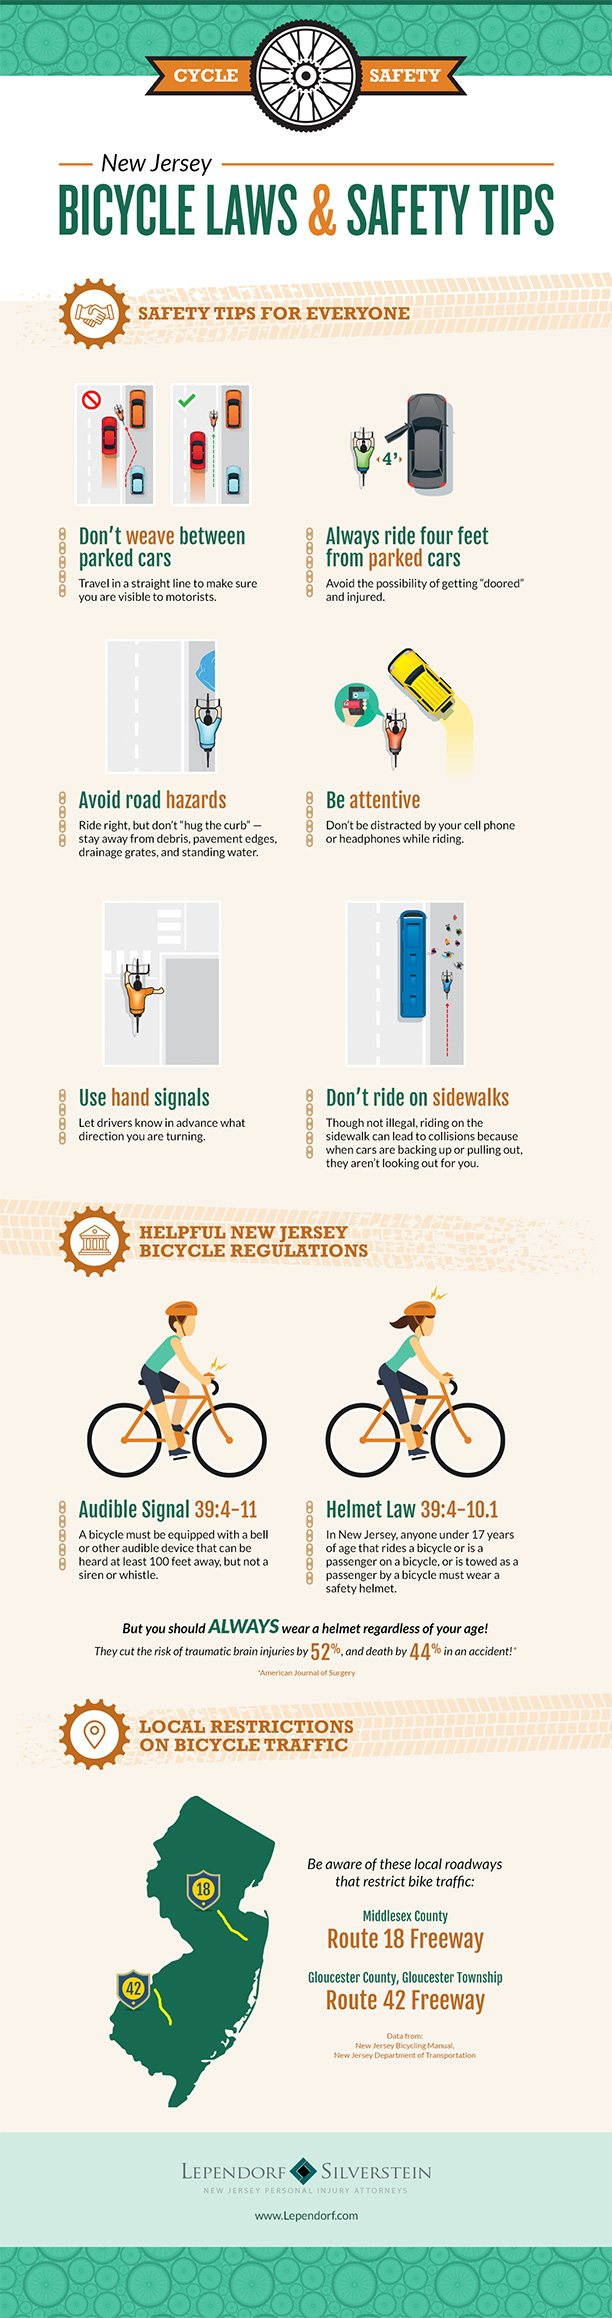 Bicycle Laws and Safety Tips